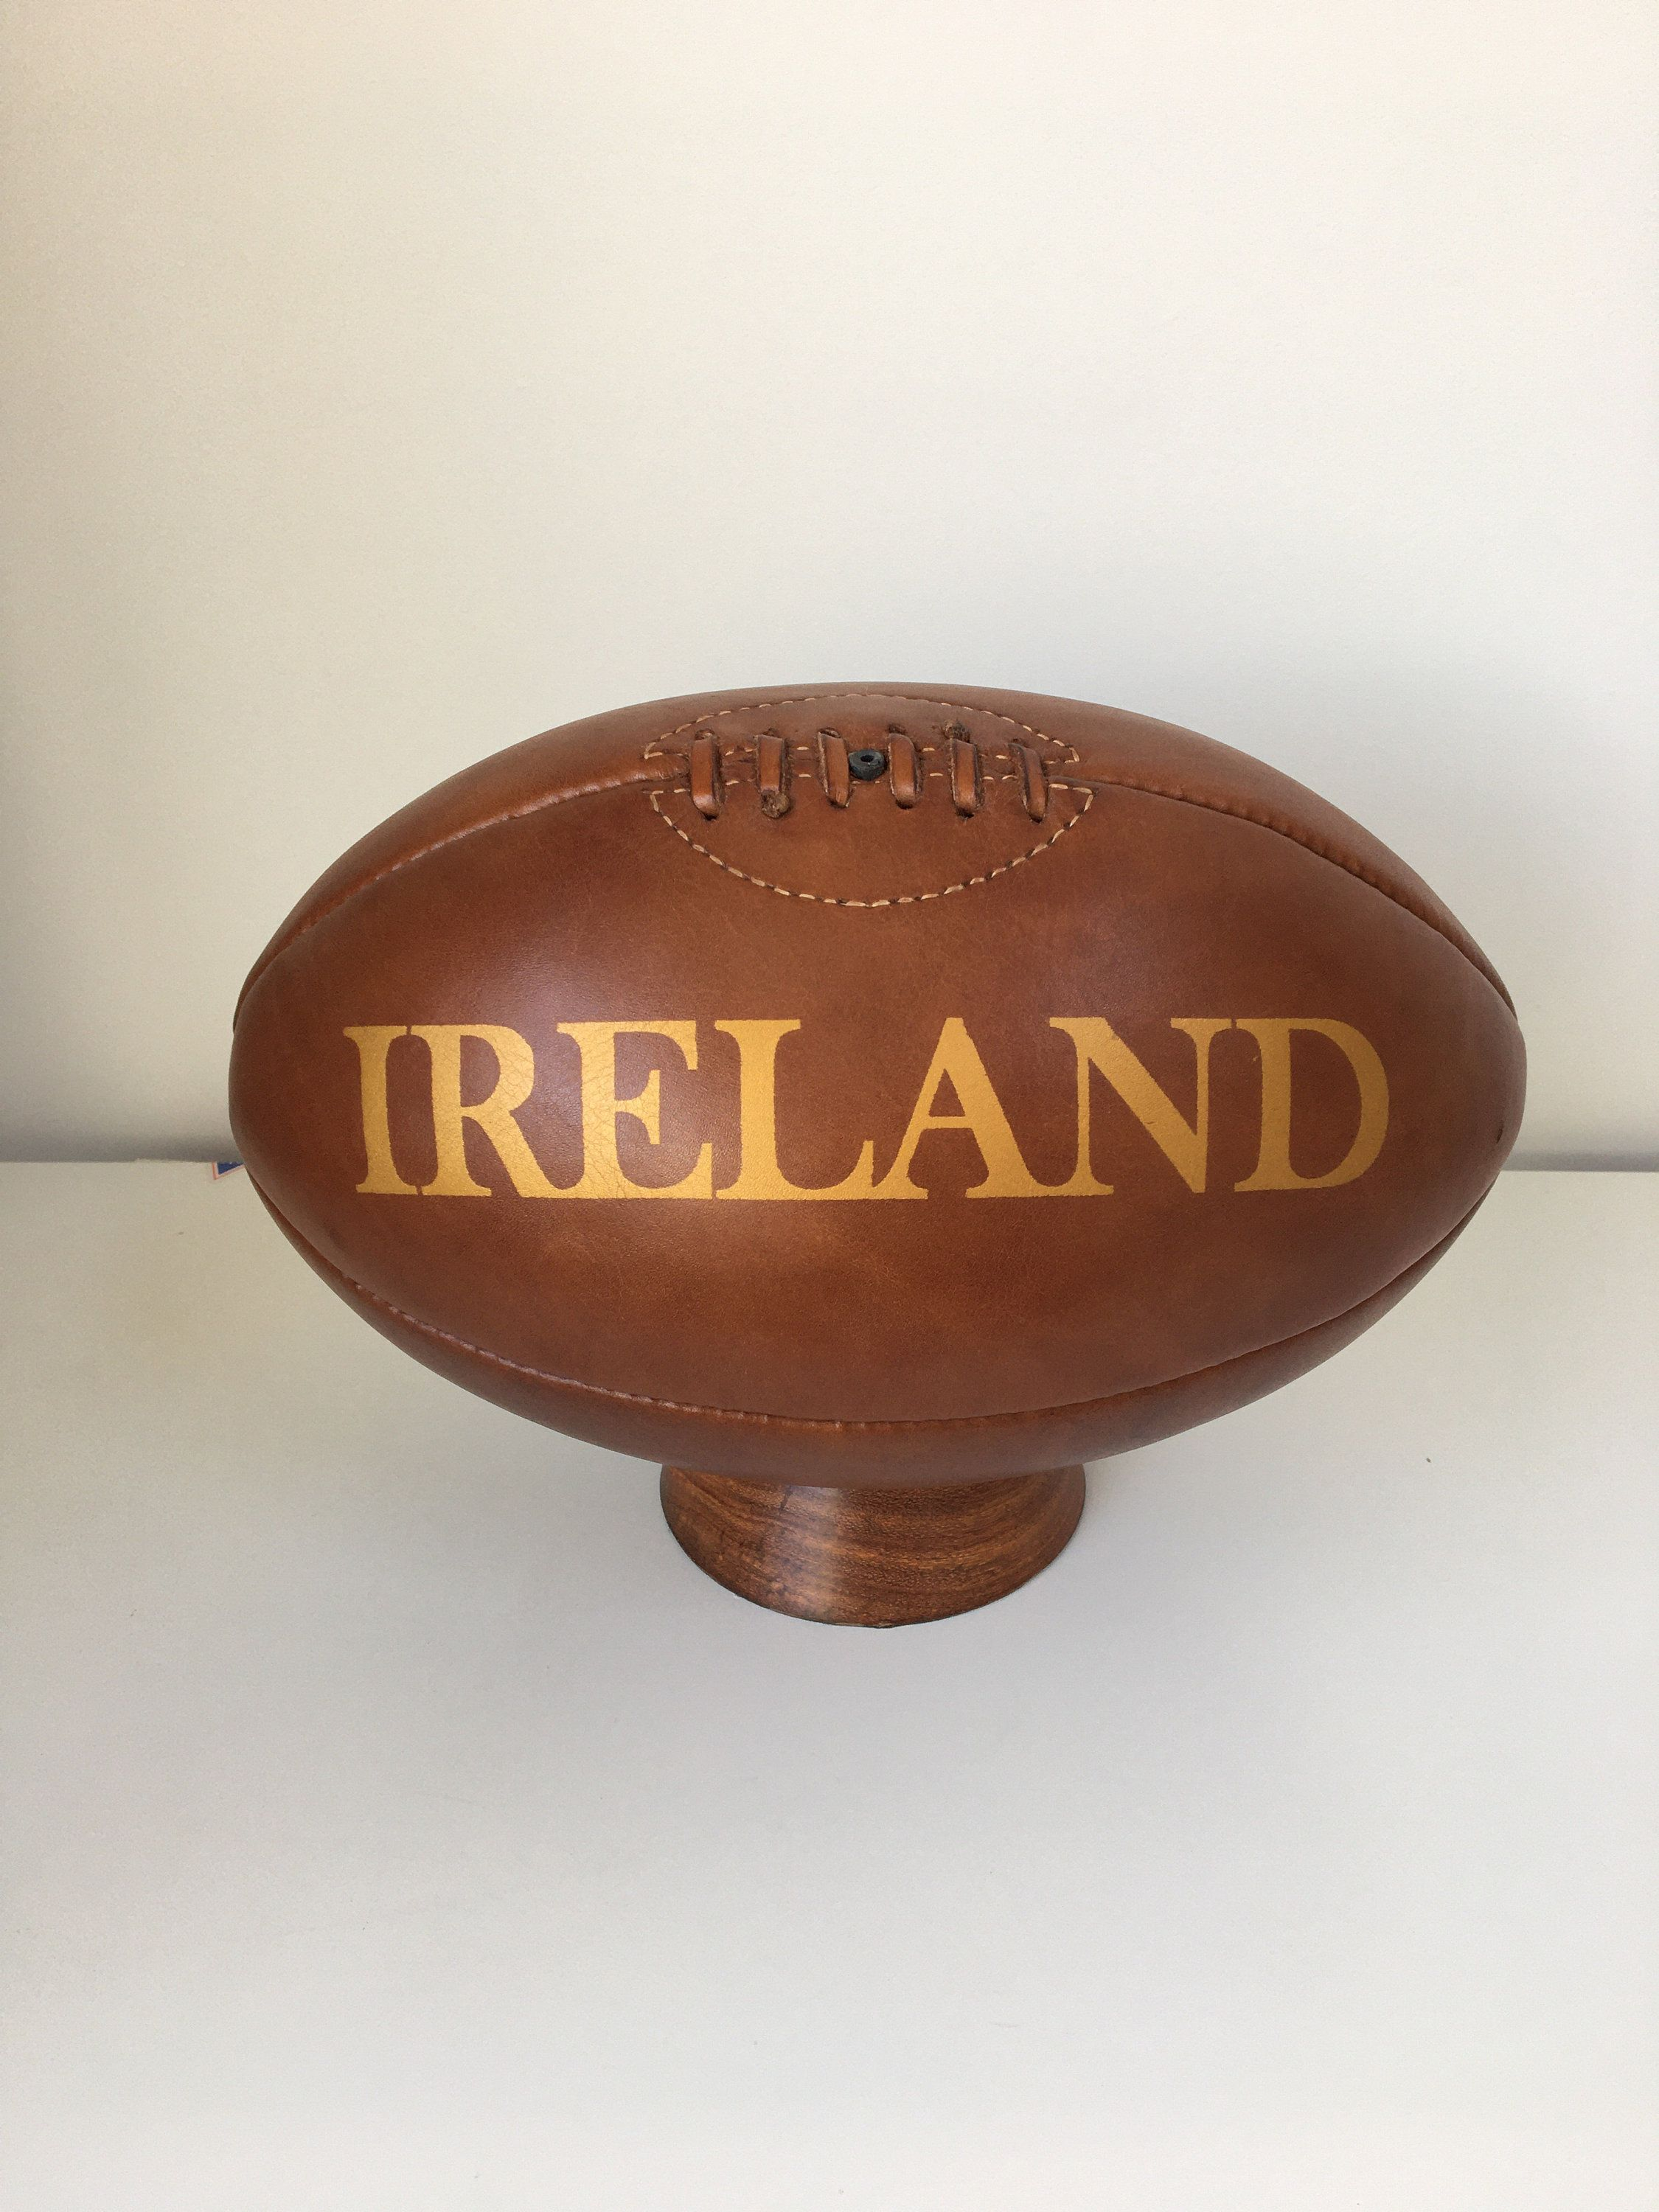 Rugby Vintage Ireland Rugby Ball With Wooden Plinth Leather Rugby Ball Gift For Men Teenager In 2020 Rugby Ball Rugby Vintage Vintage Ireland